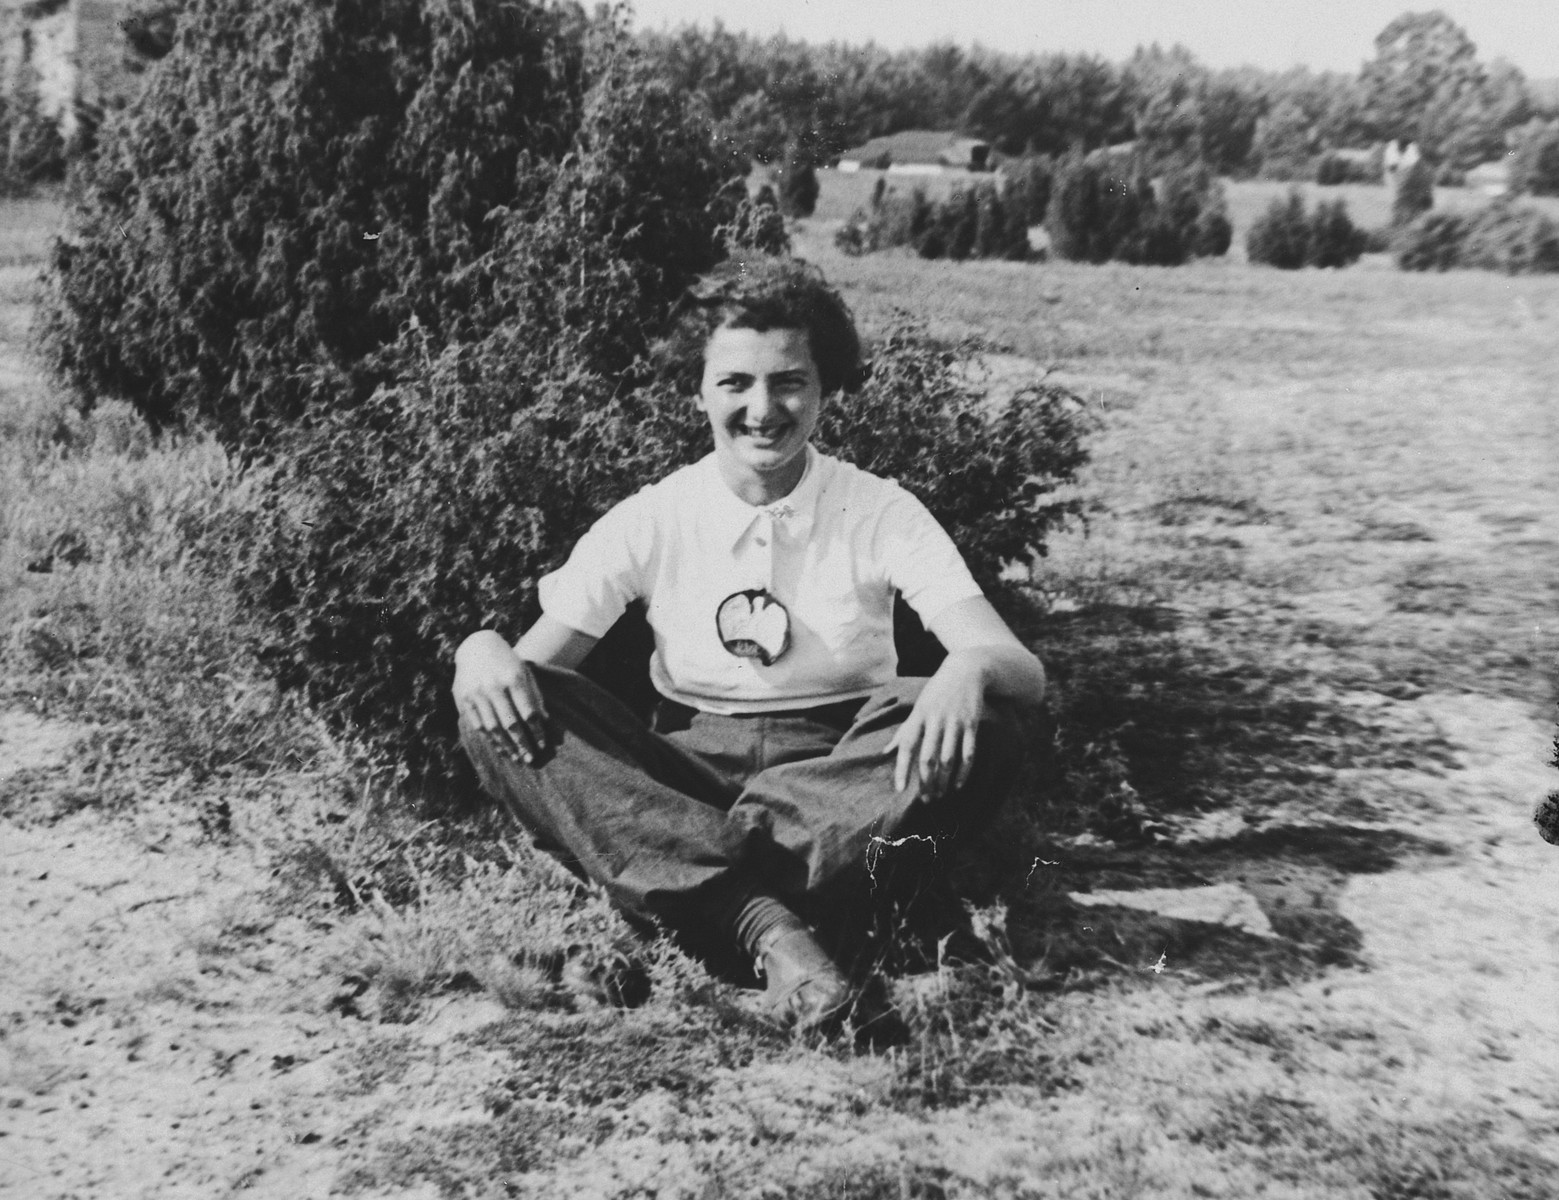 A Jewish teenage girl poses next to a shrub in the Polish countryside.  Pictured is Janina Bussgang.